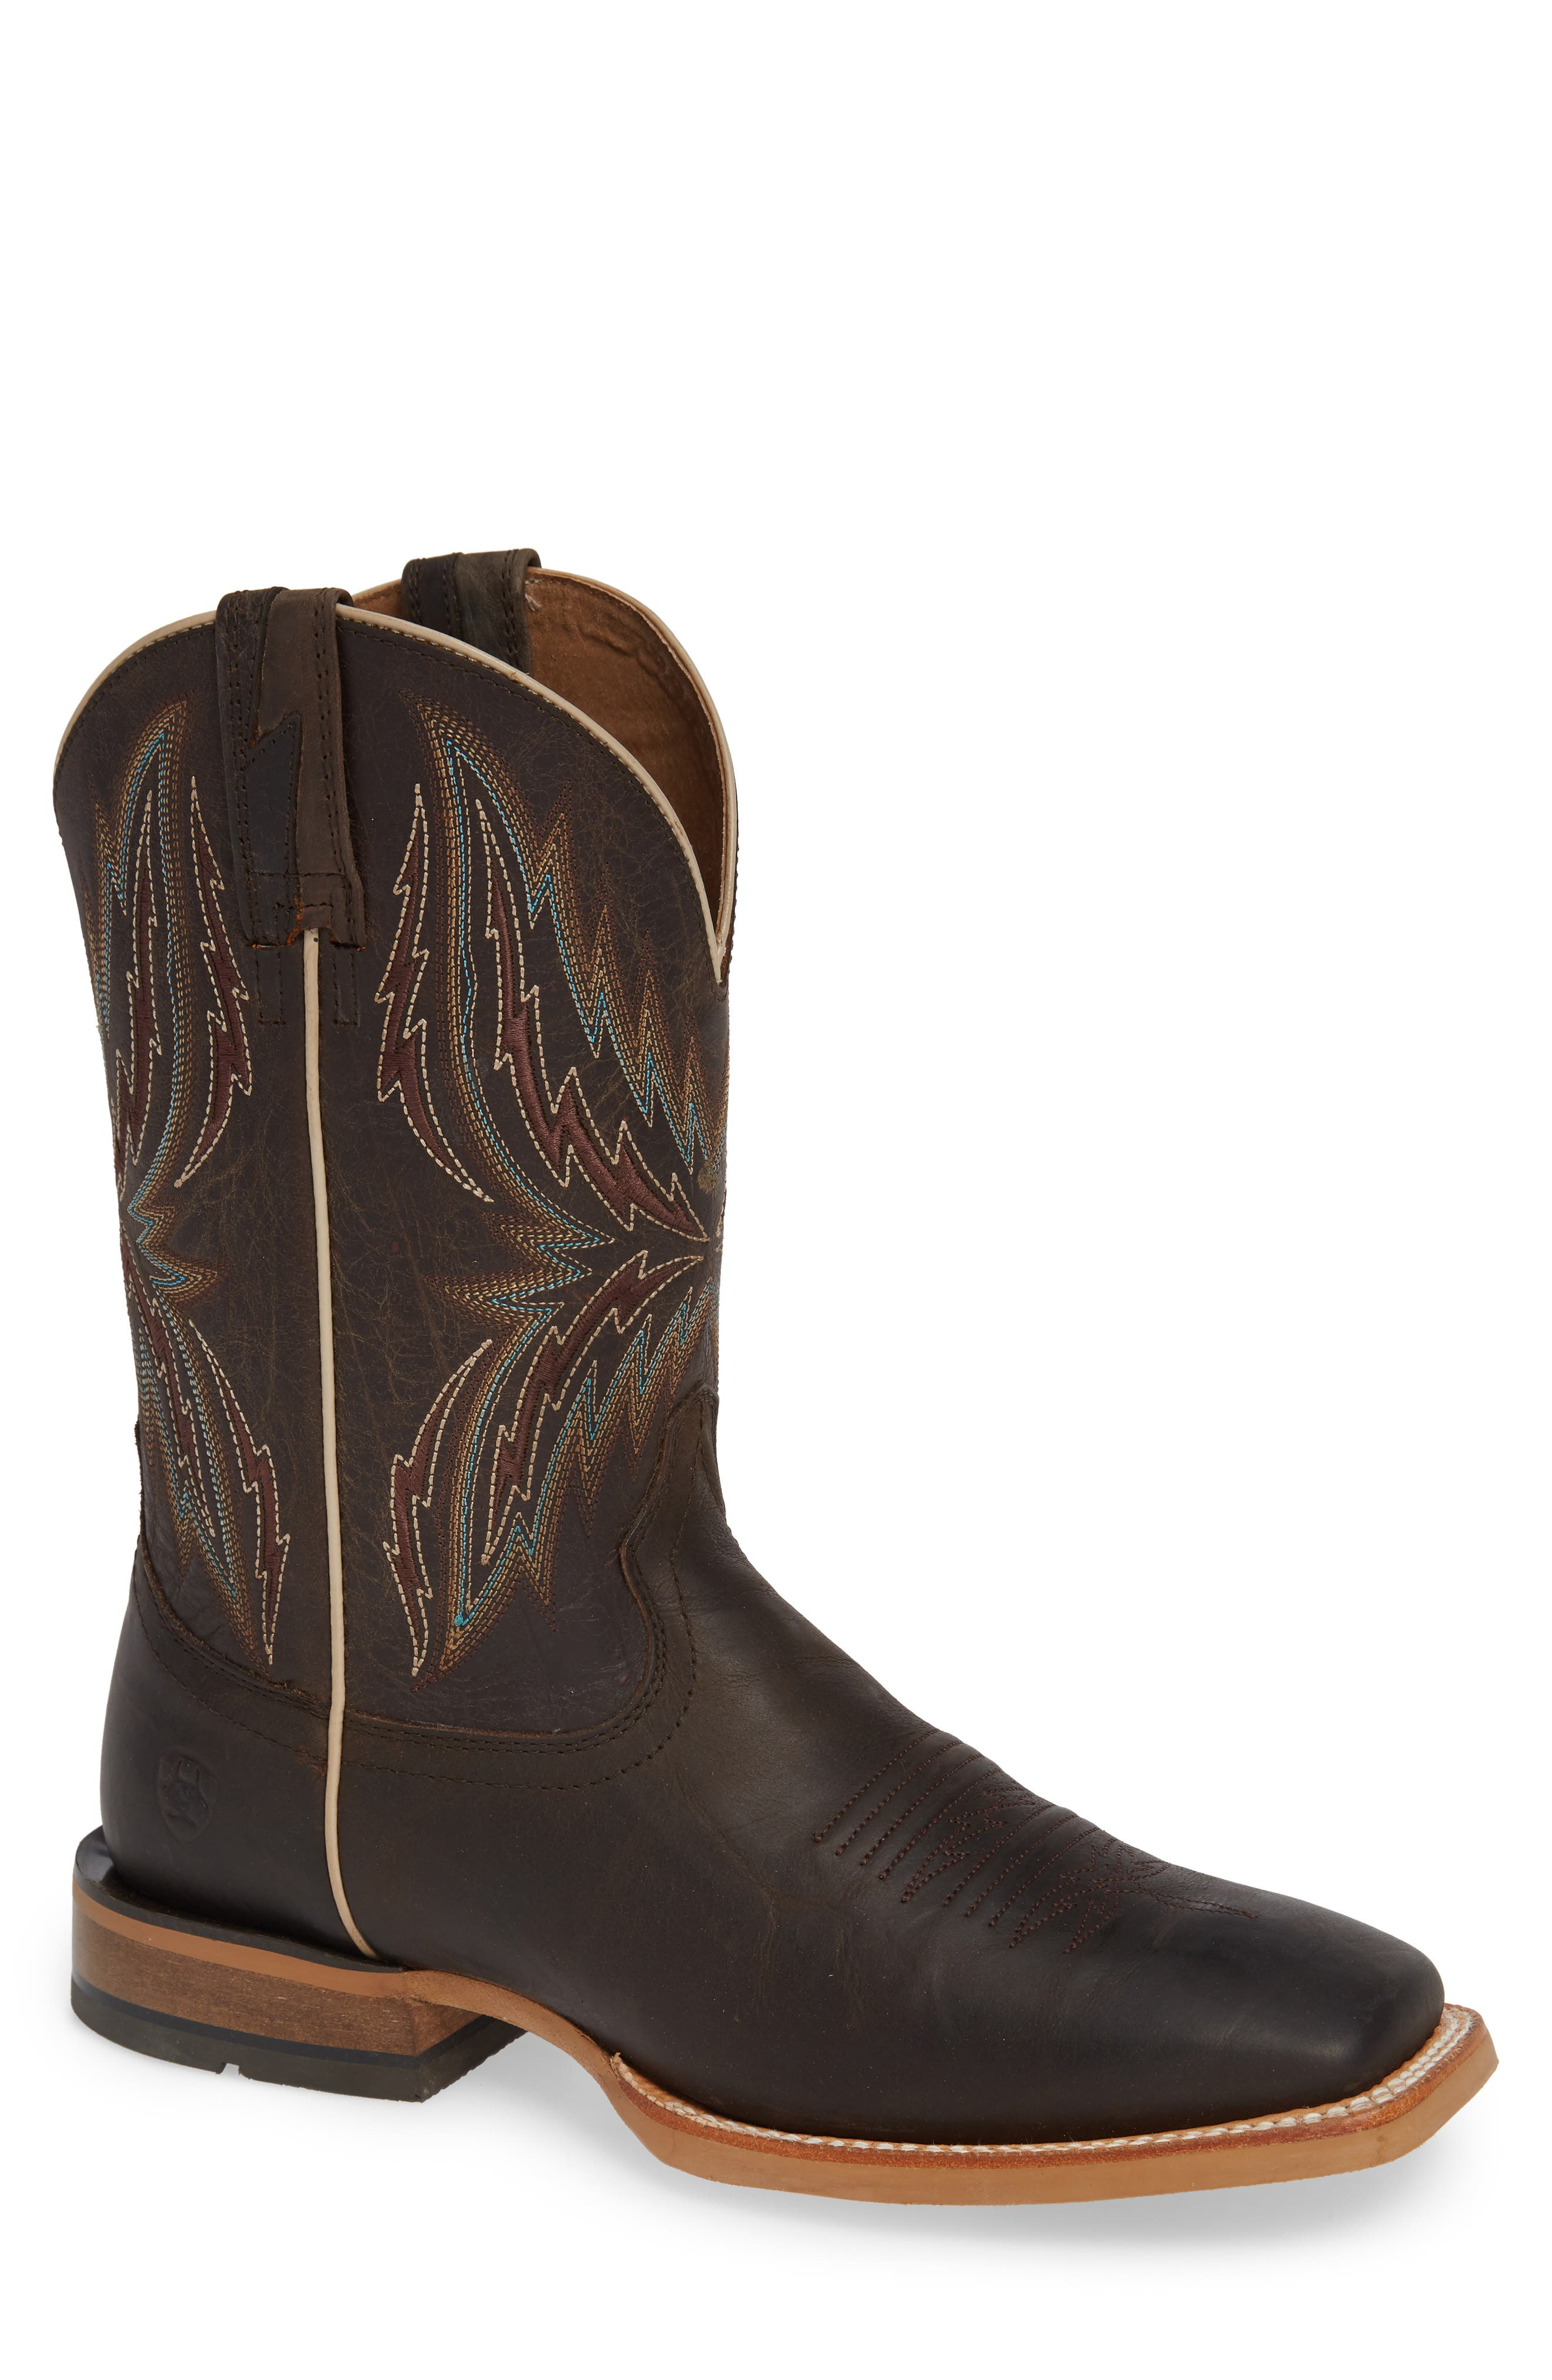 ARIAT, Arena Rebound Cowboy Boot, Main thumbnail 1, color, 200